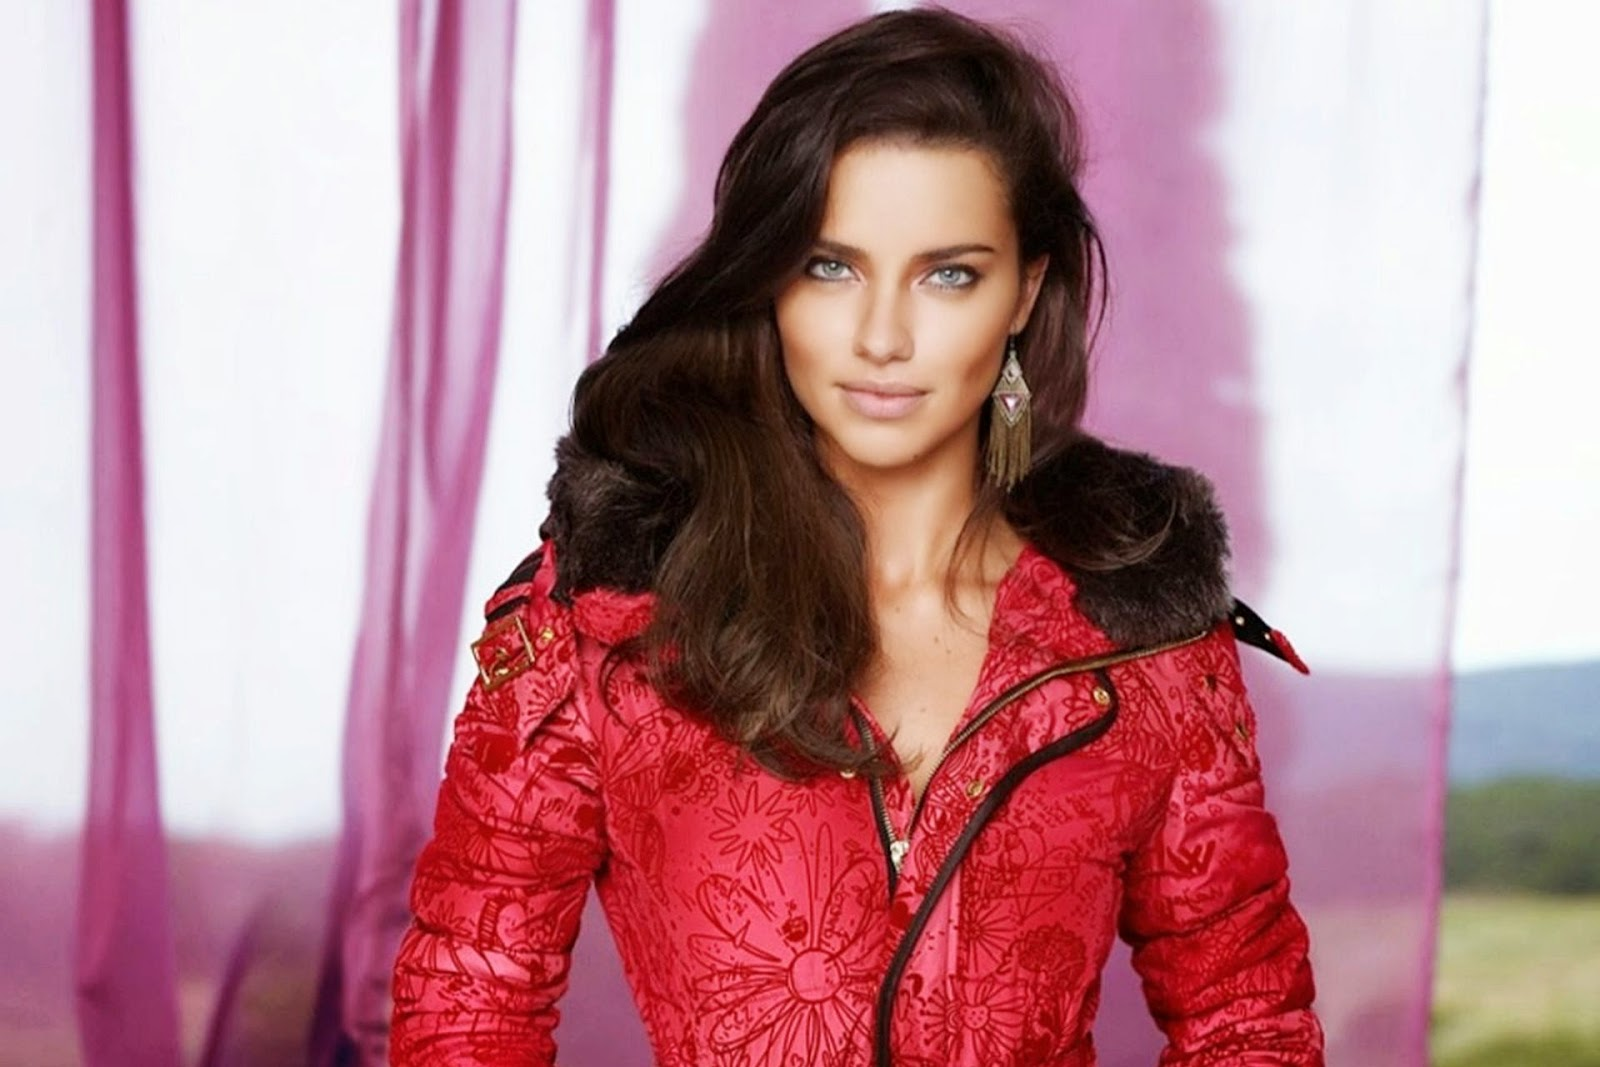 Adriana Lima Hd Wallpapers Free Download